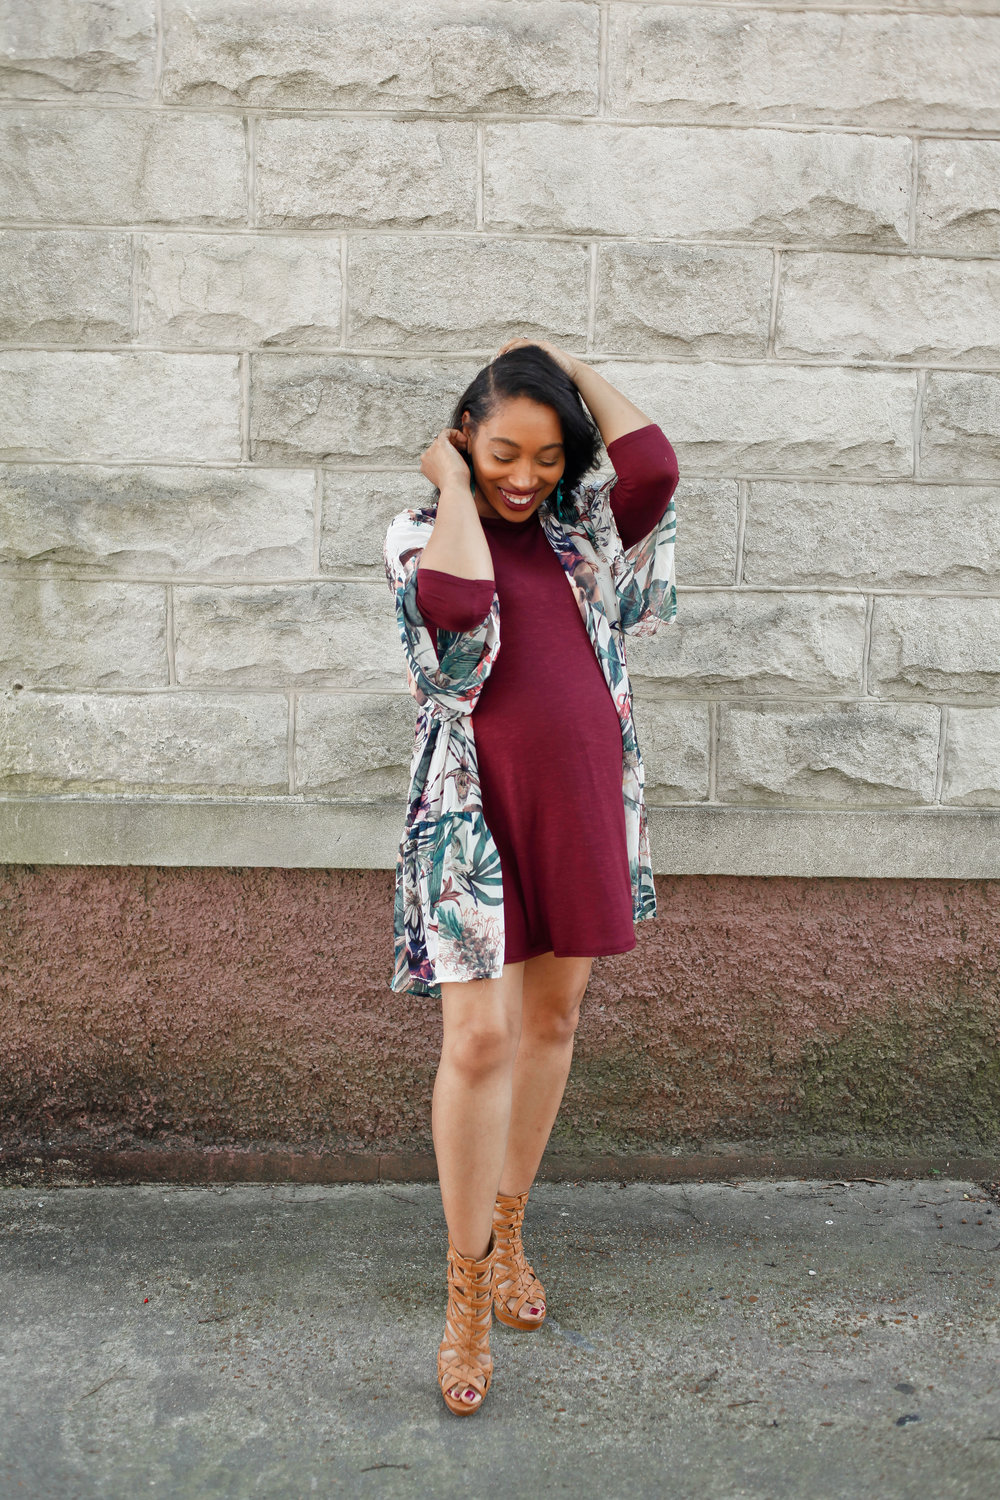 Andrea Fenise Memphis Fashion Blogger shares how to style a kimono while pregnant